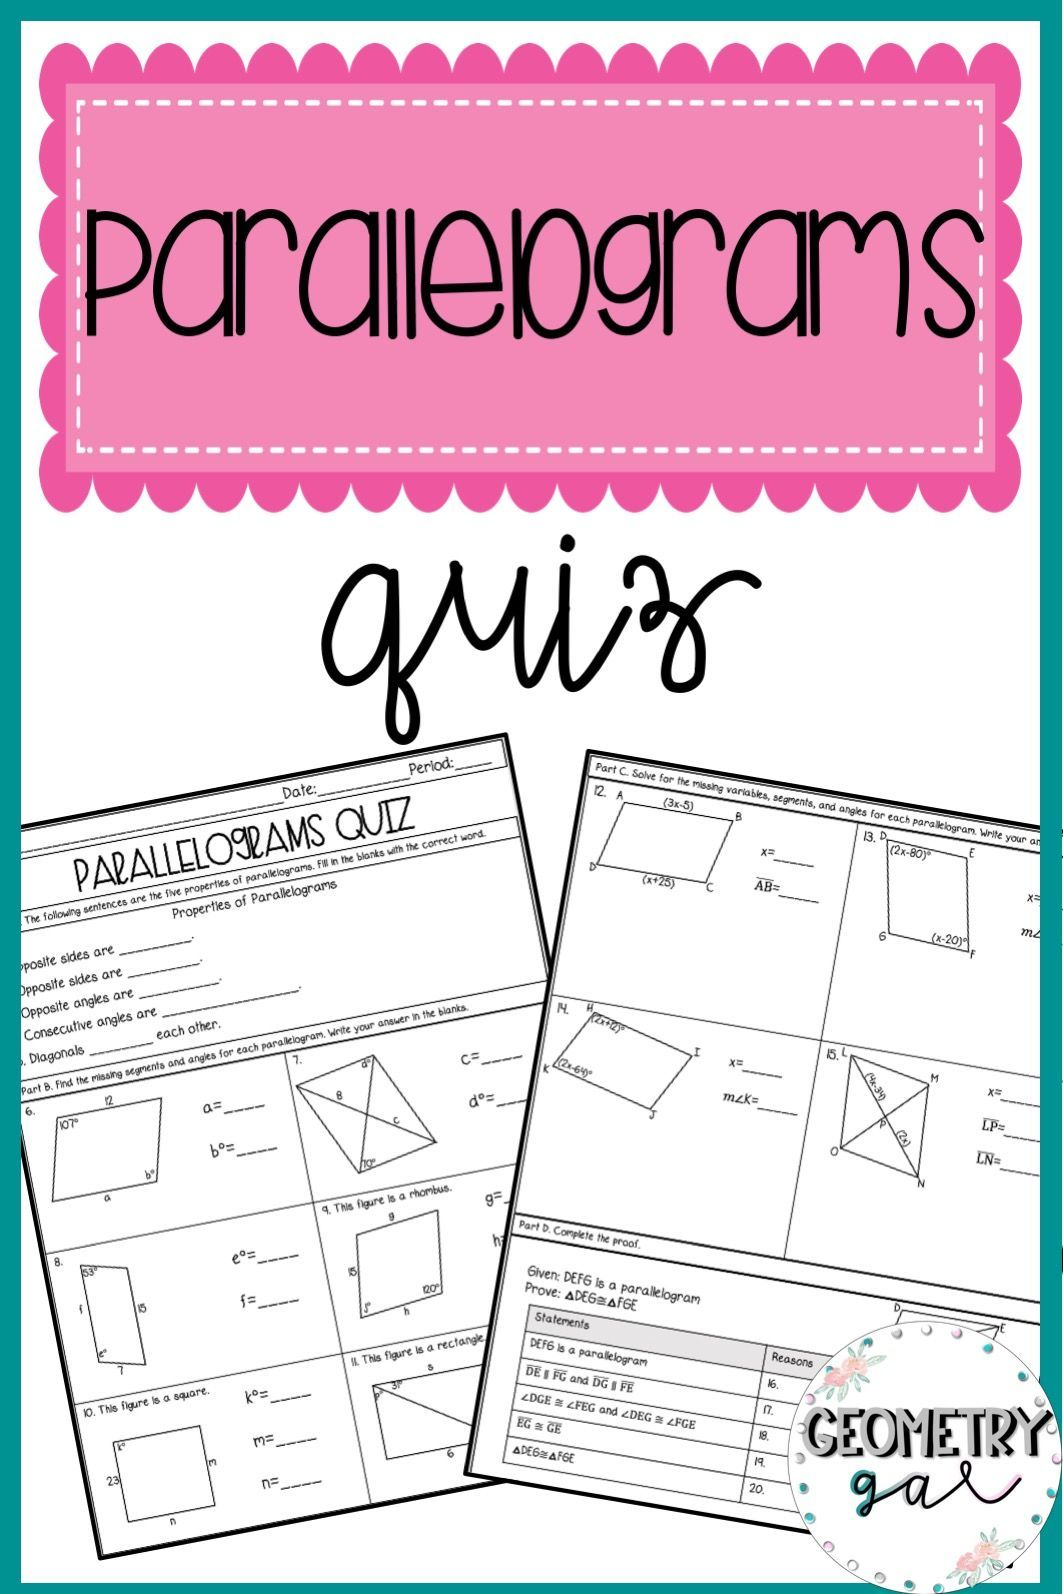 Parallelograms Quiz